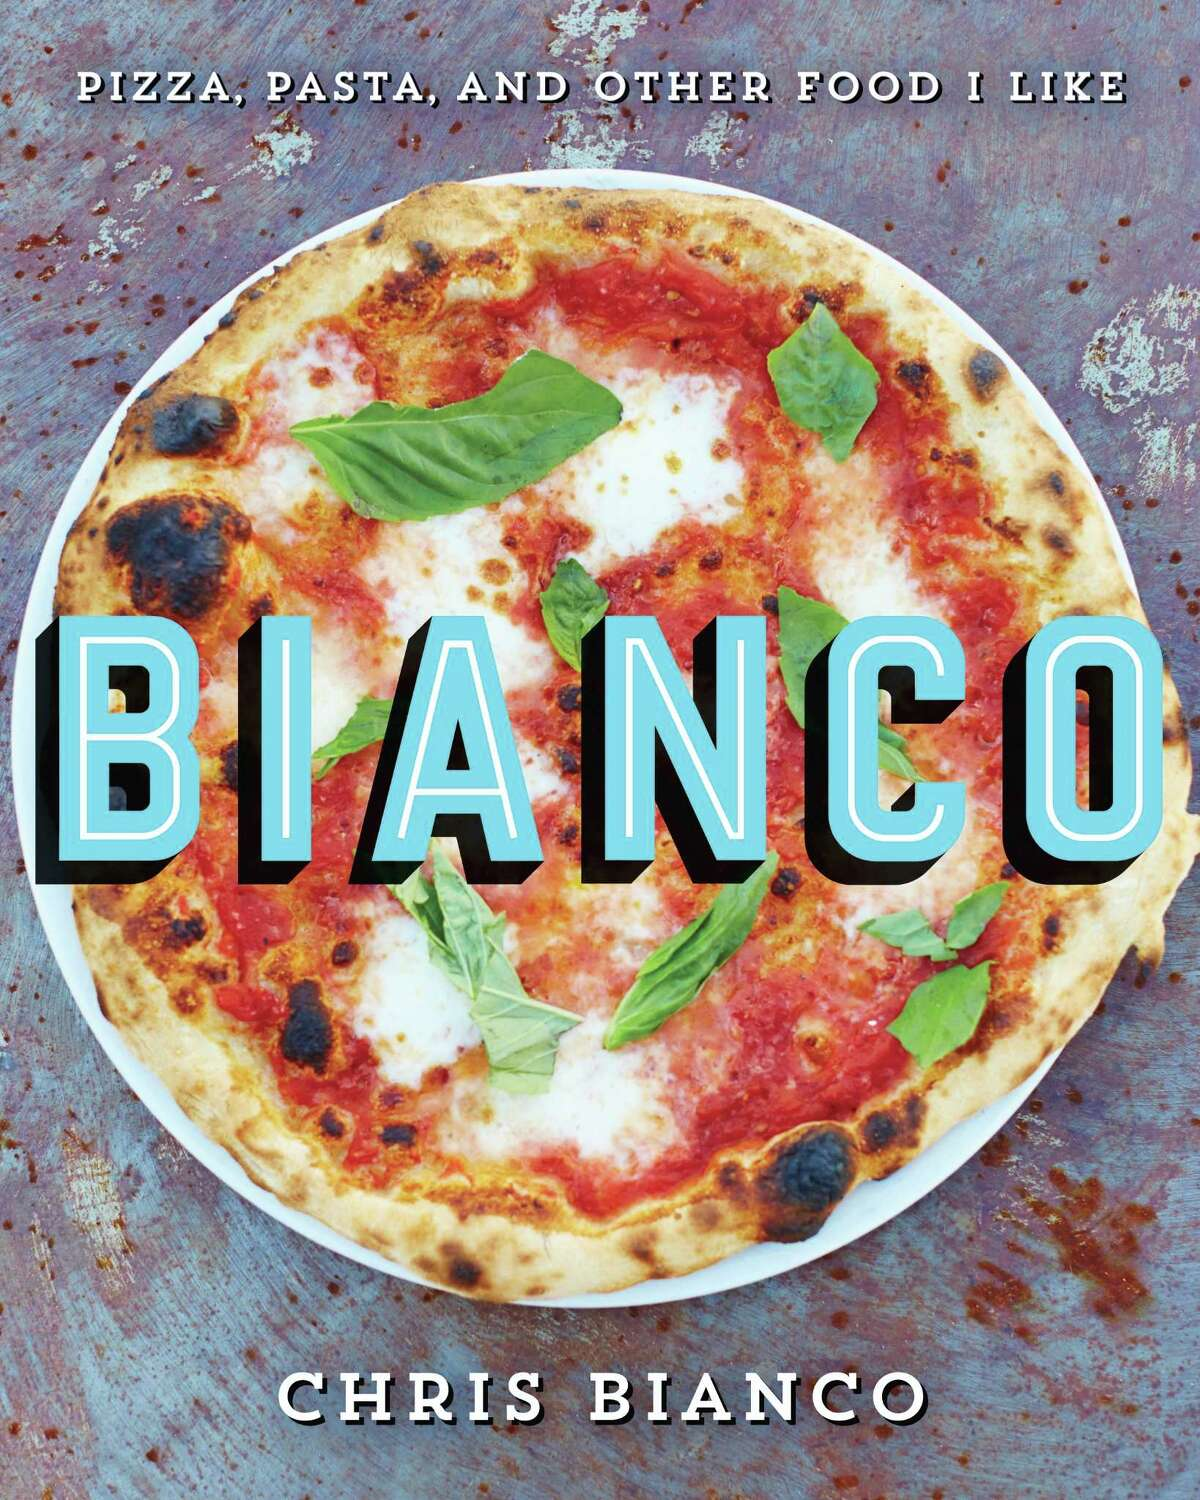 """""""Bianco: Pizza, Pasta, and Other Foods I Like"""" by Chris Bianco (Ecco, $34.99)"""